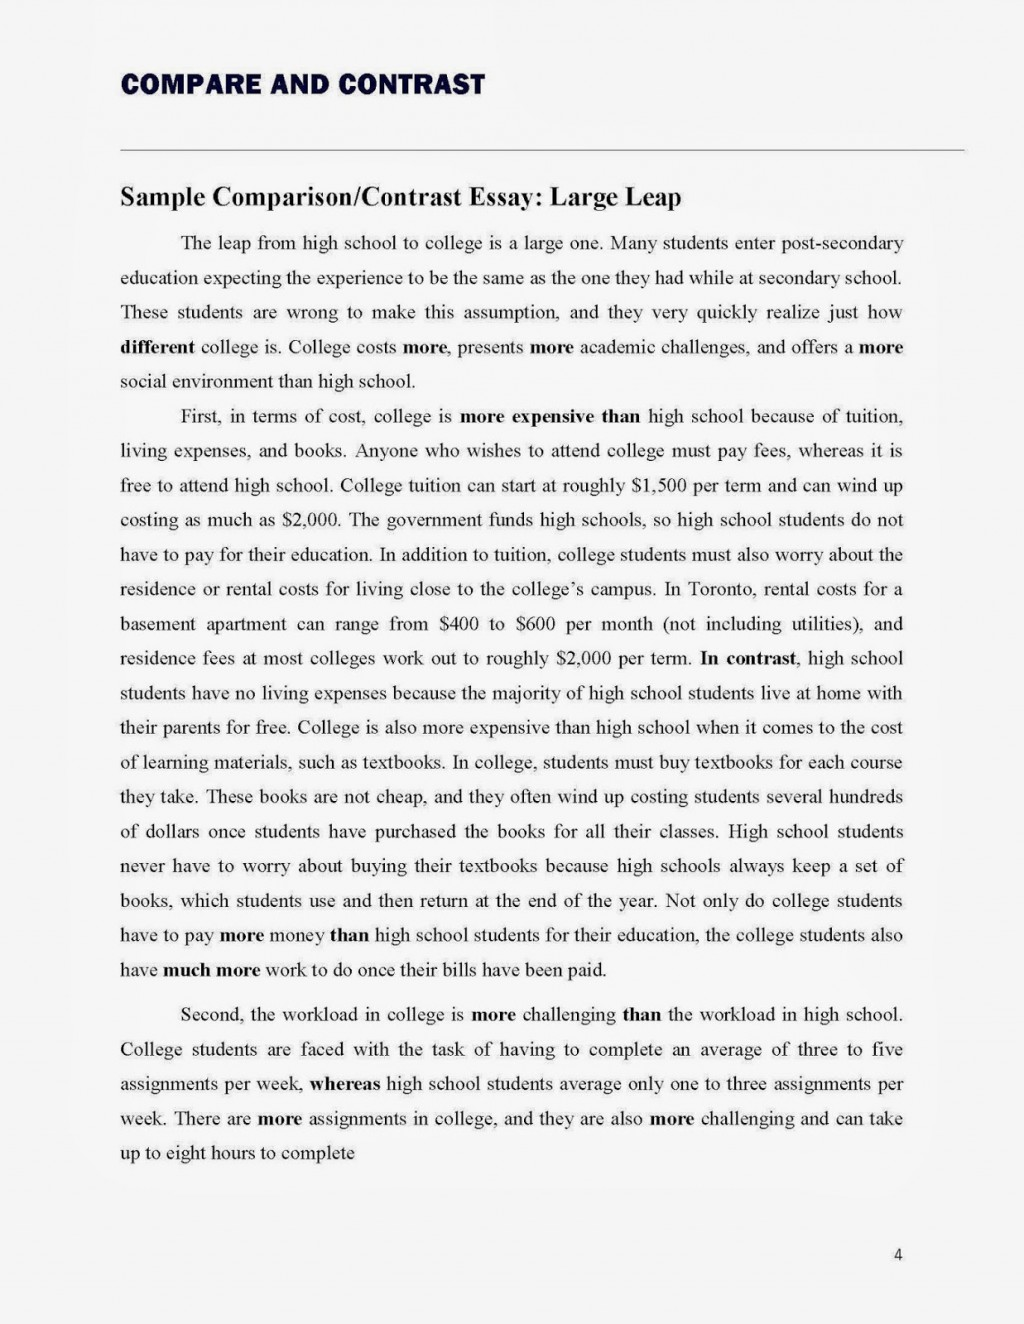 011 Good Compare And Contrast Essay Compare20and20contrast20essay Page 4 Unbelievable Title Generator Examples High School Titles Large